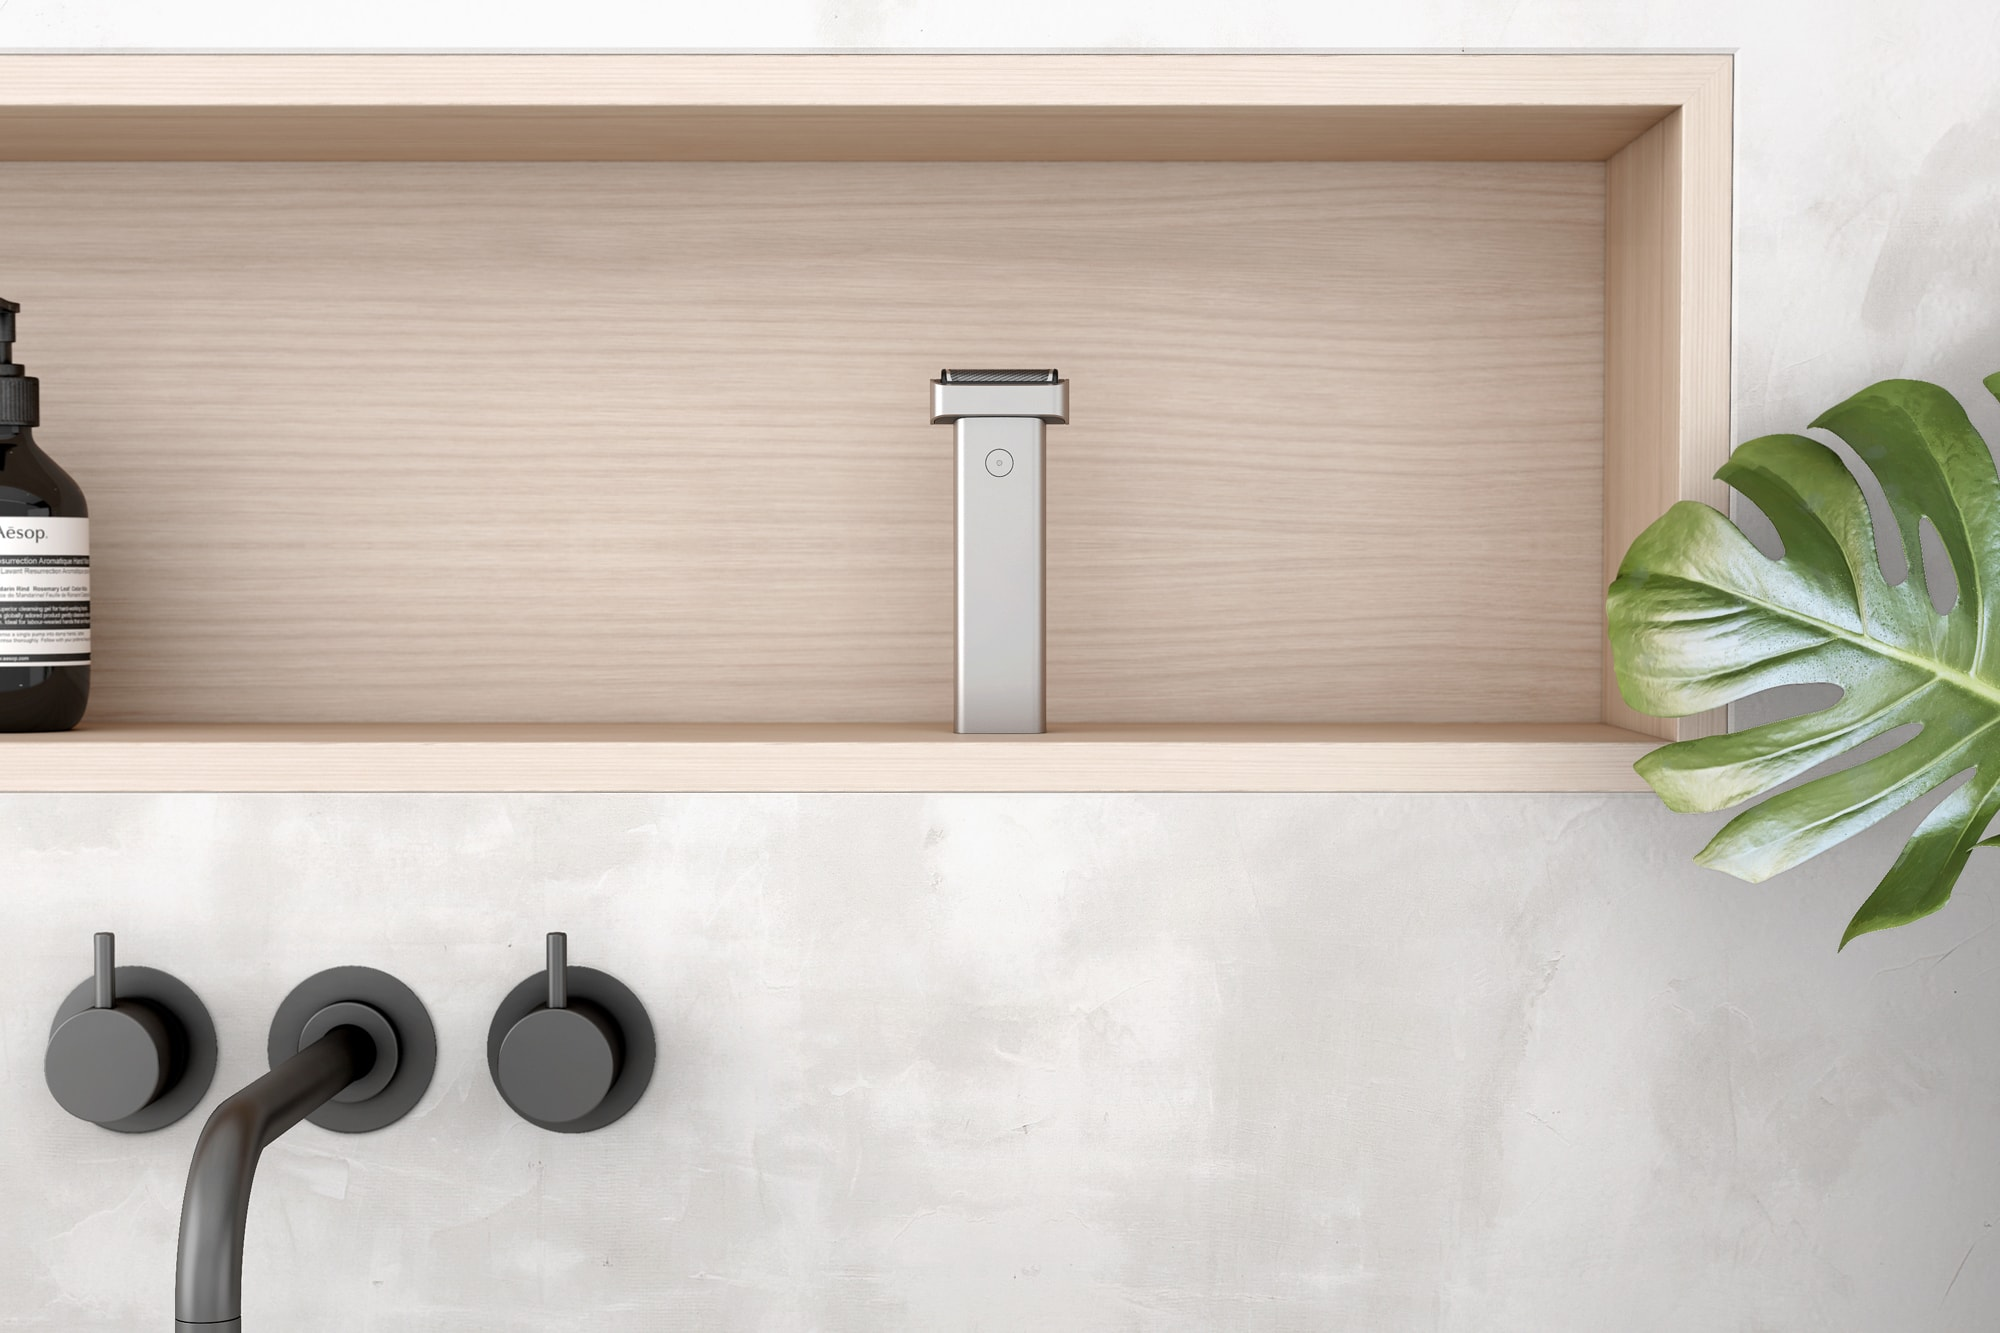 Front view of the Extrusion shaver on a wooden shelf in a bathroom.